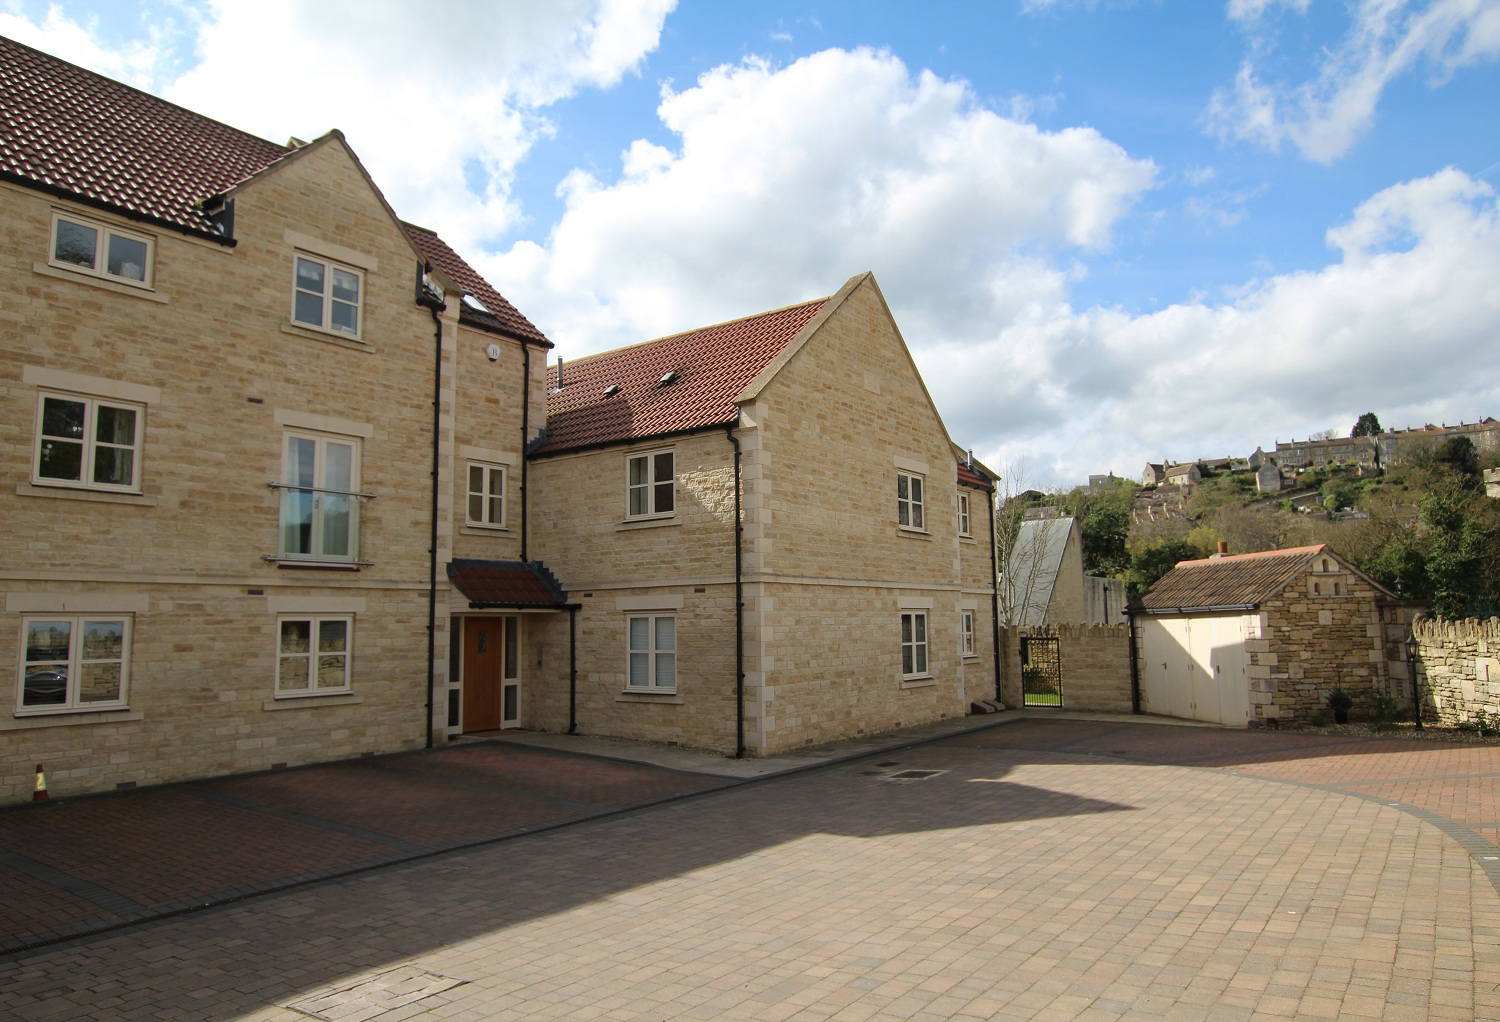 2 Bedroom Flat To Rent Station Approach Bradford On Avon